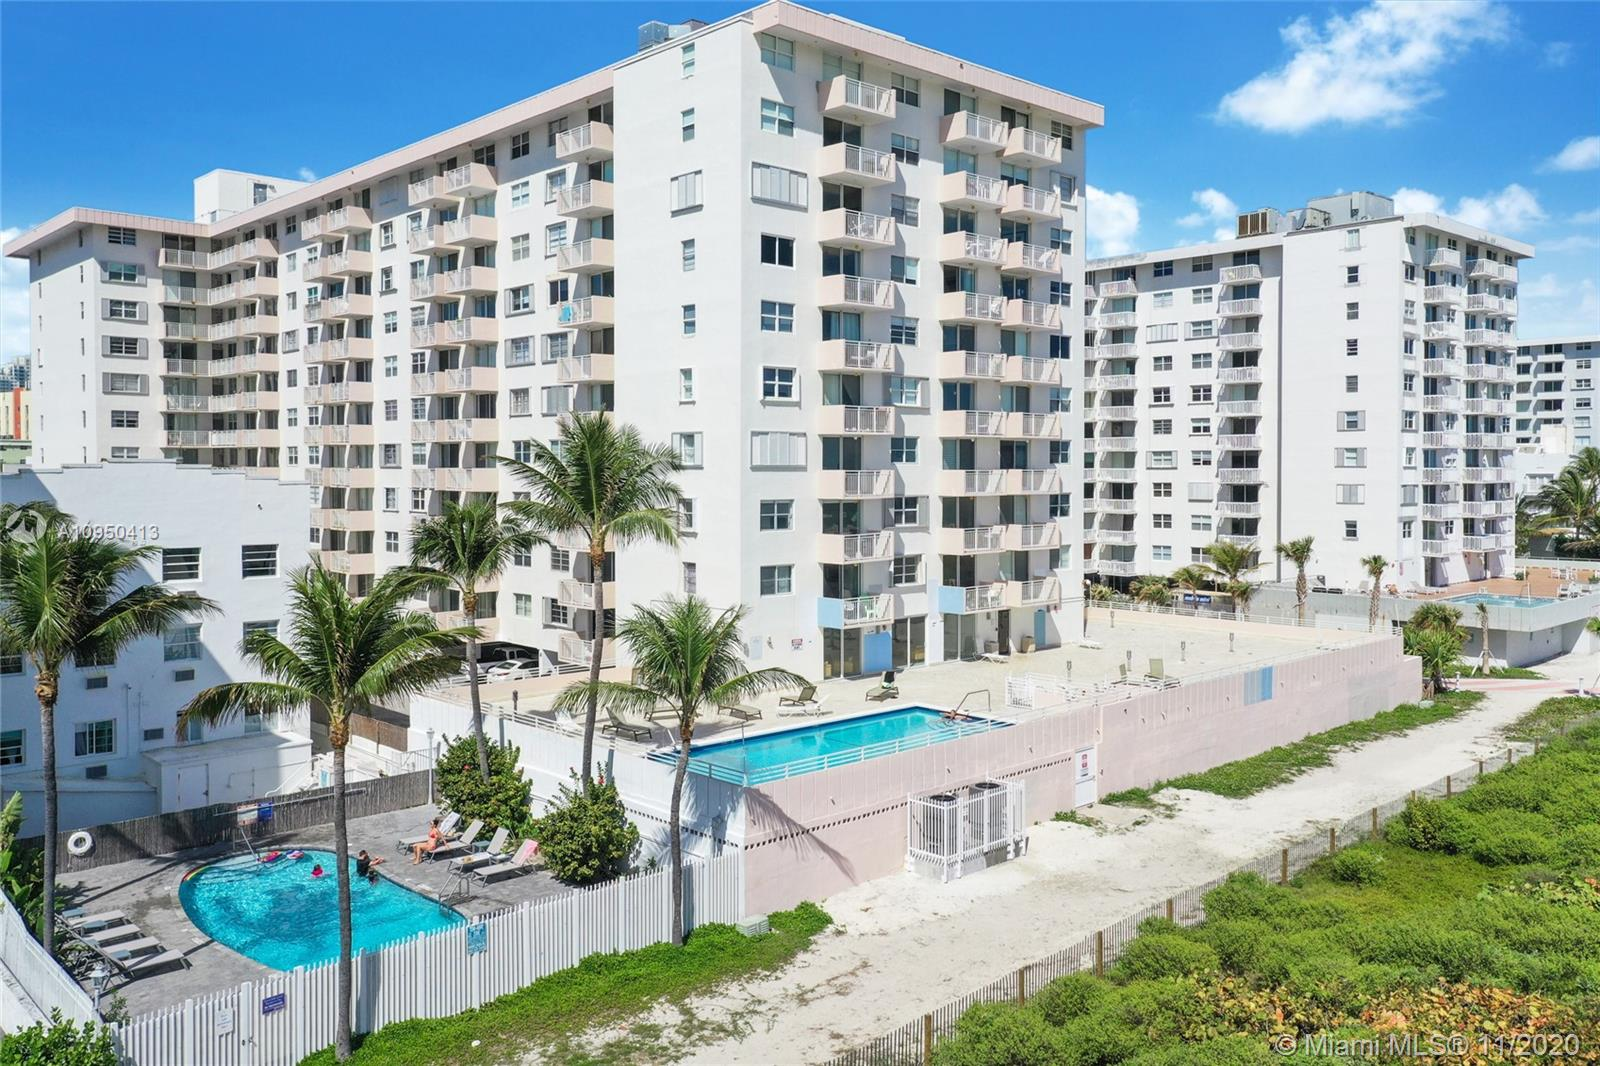 Ocean Point #802 - 345 Ocean Dr #802, Miami Beach, FL 33139